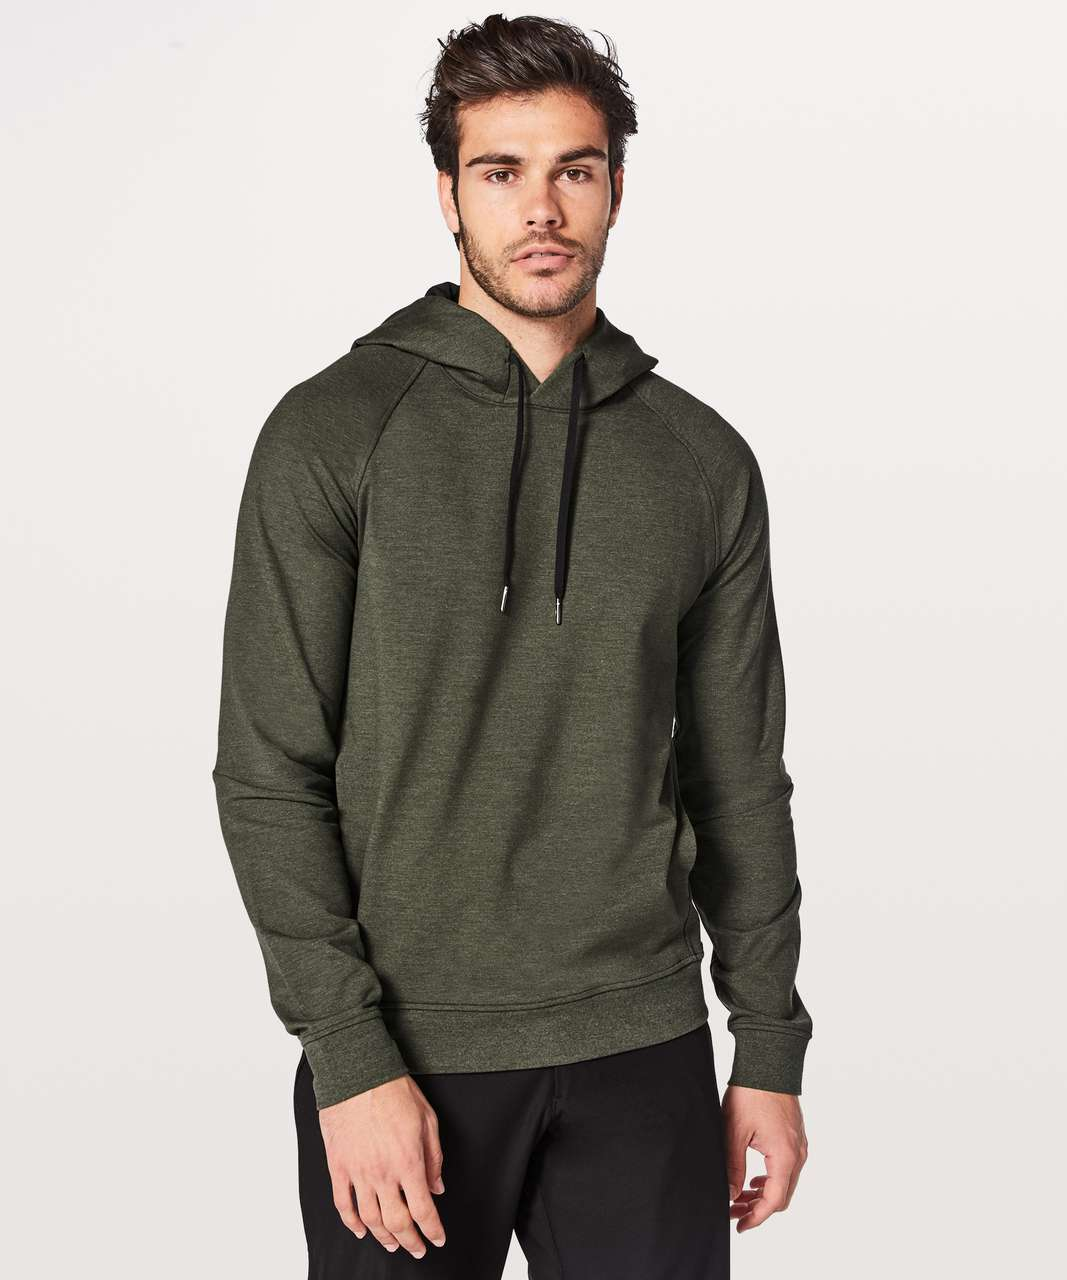 Lululemon City Sweat Pullover Hoodie - Heathered Dark Olive